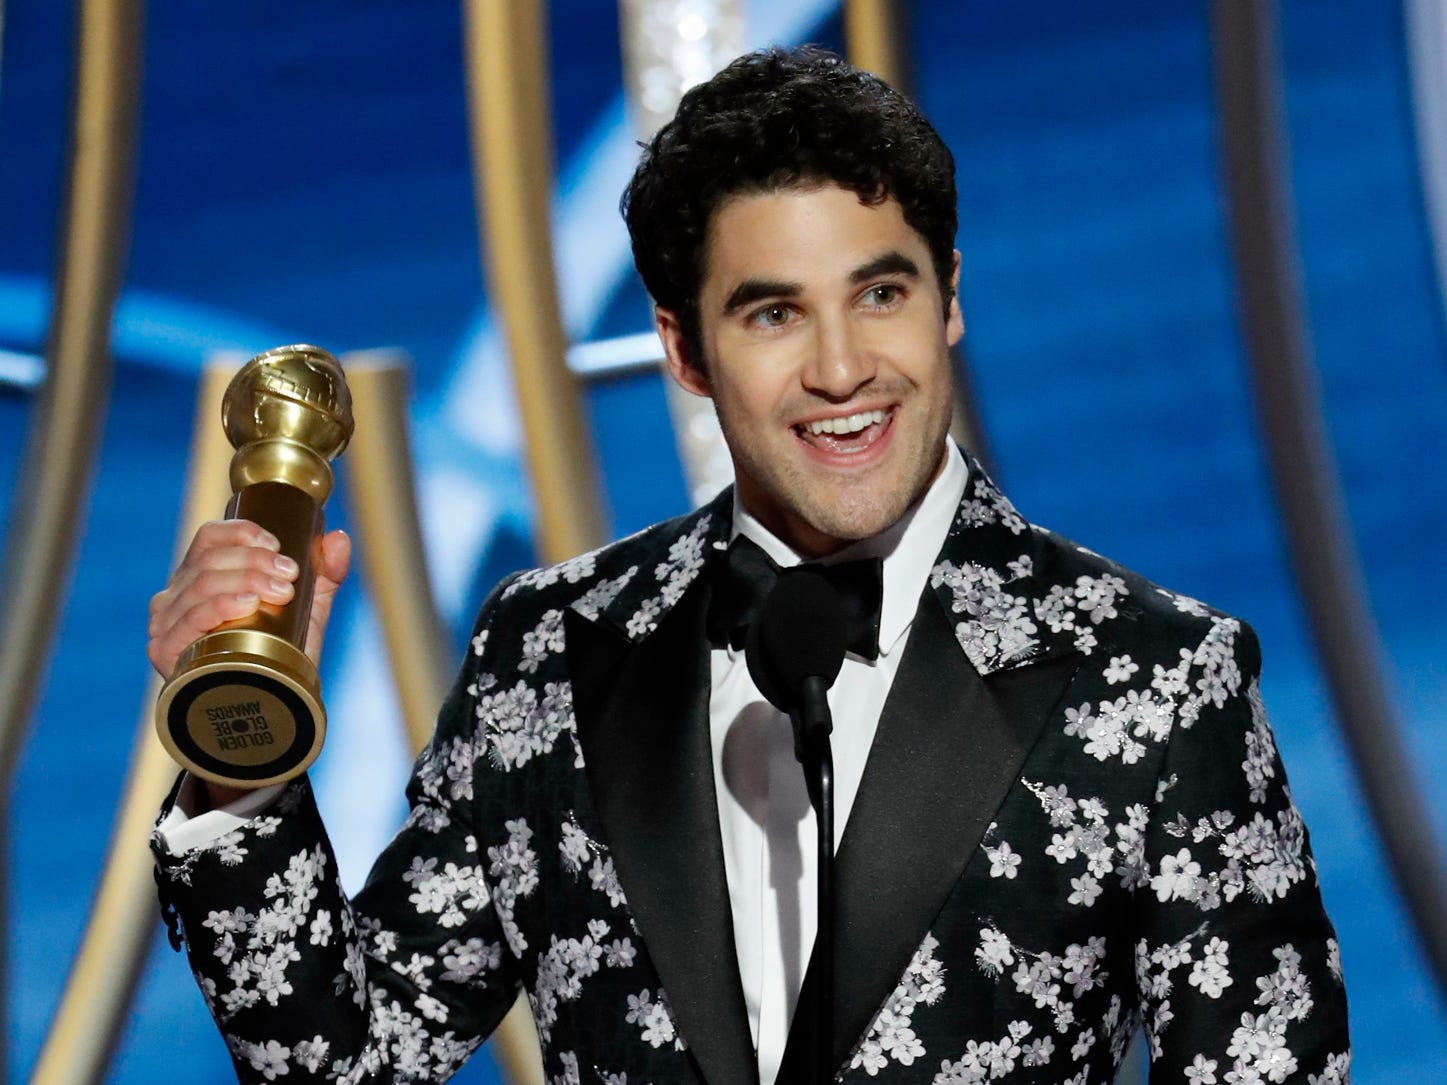 Darren Criss accepts the award for Best Actor - Limited Series or Picture Made for Television during the 76th Golden Globe Awards.